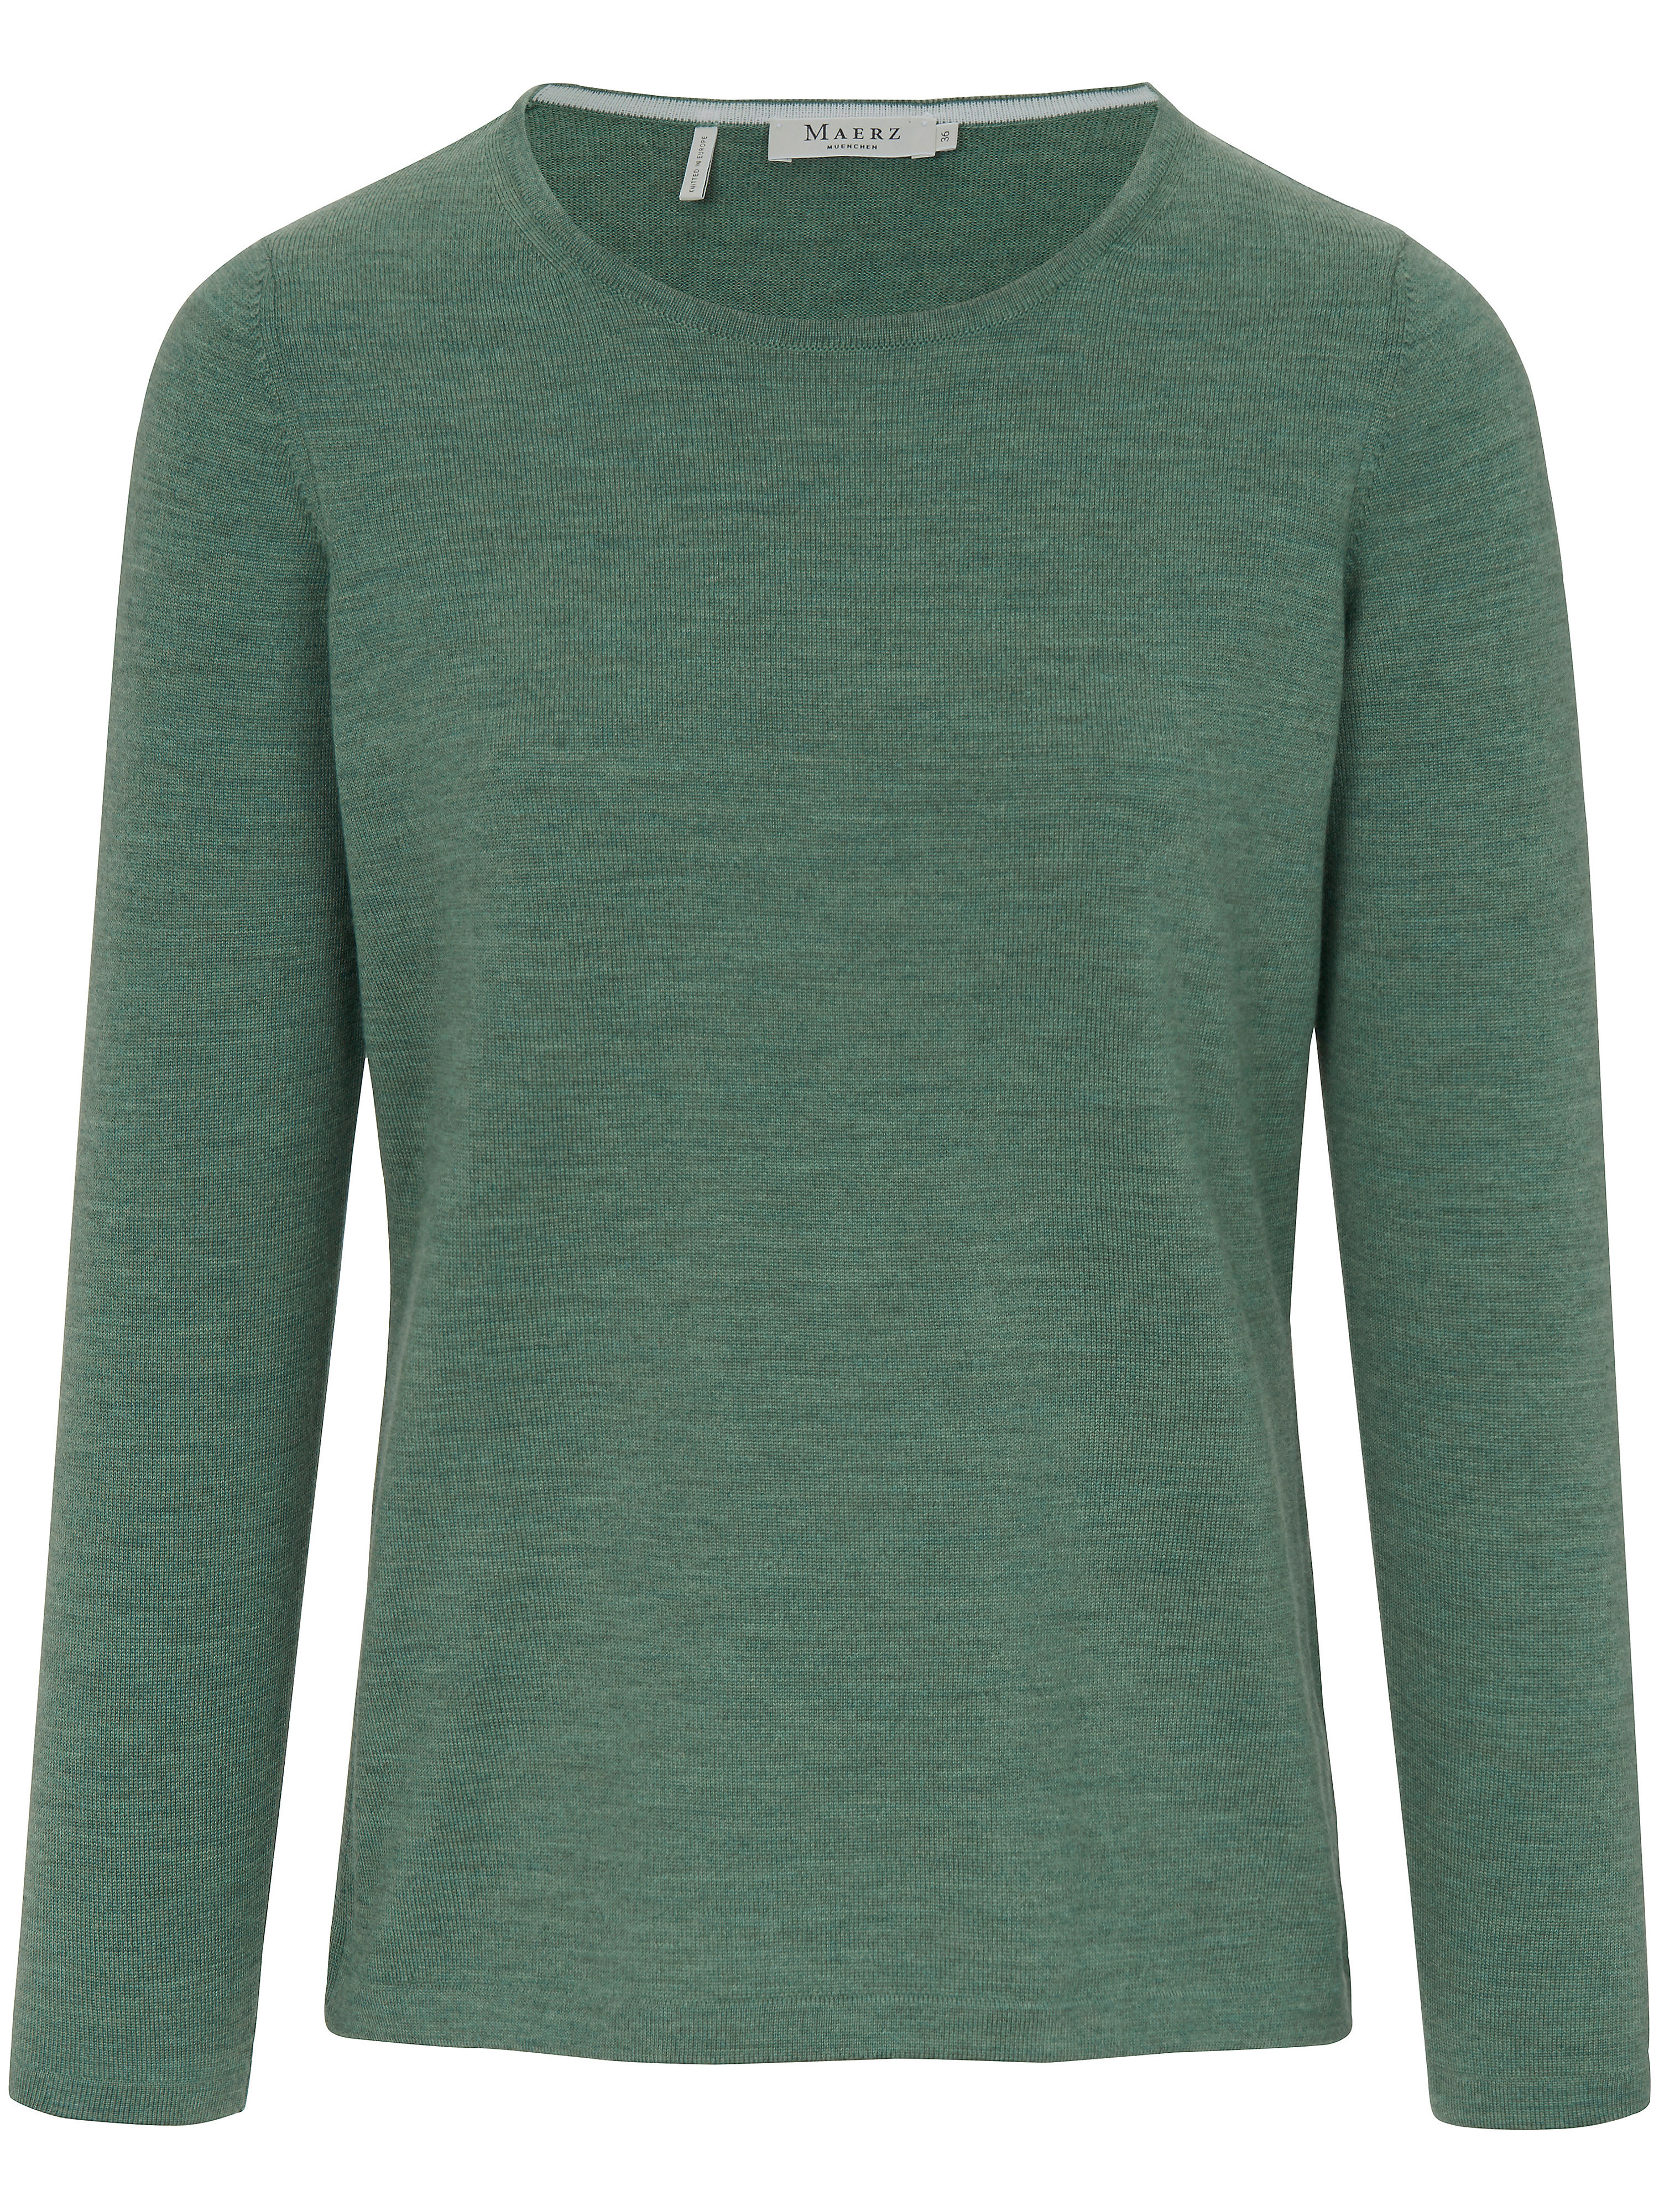 Le pull 100% laine vierge  MAERZ Muenchen vert taille 42